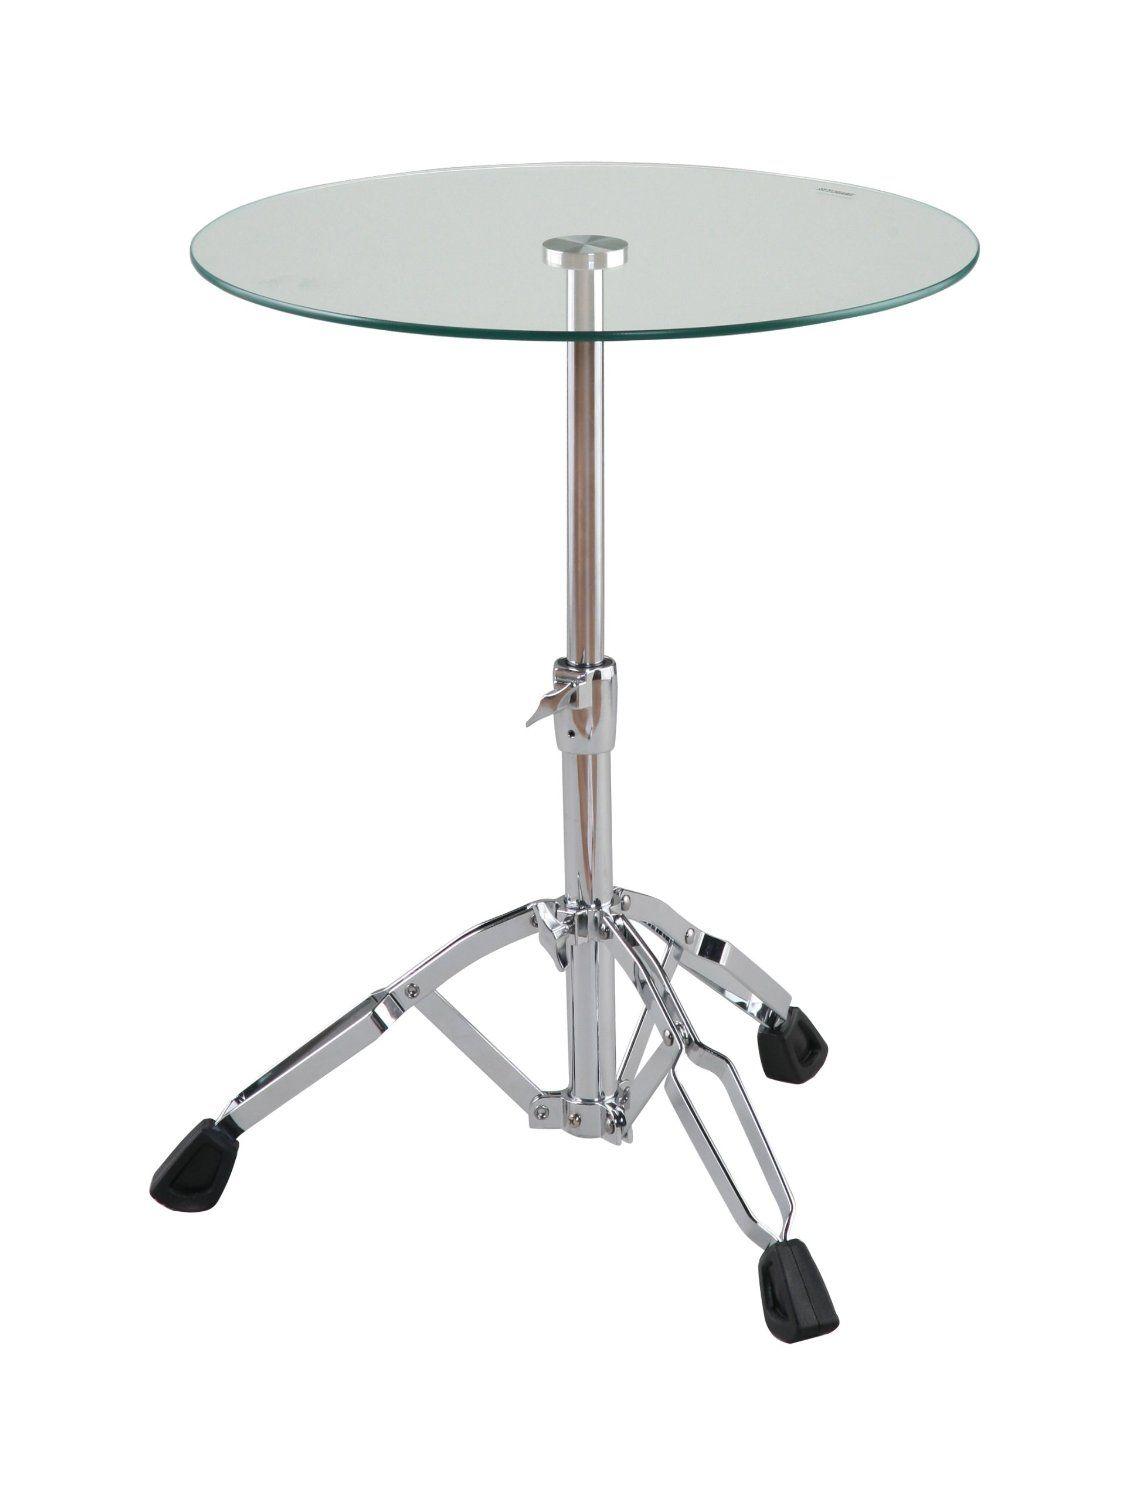 Drum Side Table It S An Incredibly Sturdy And Infinitely Adjustable Drum Stand But Right Where You Expect The Drum Is A 20 Side Table Table Drum Side Table